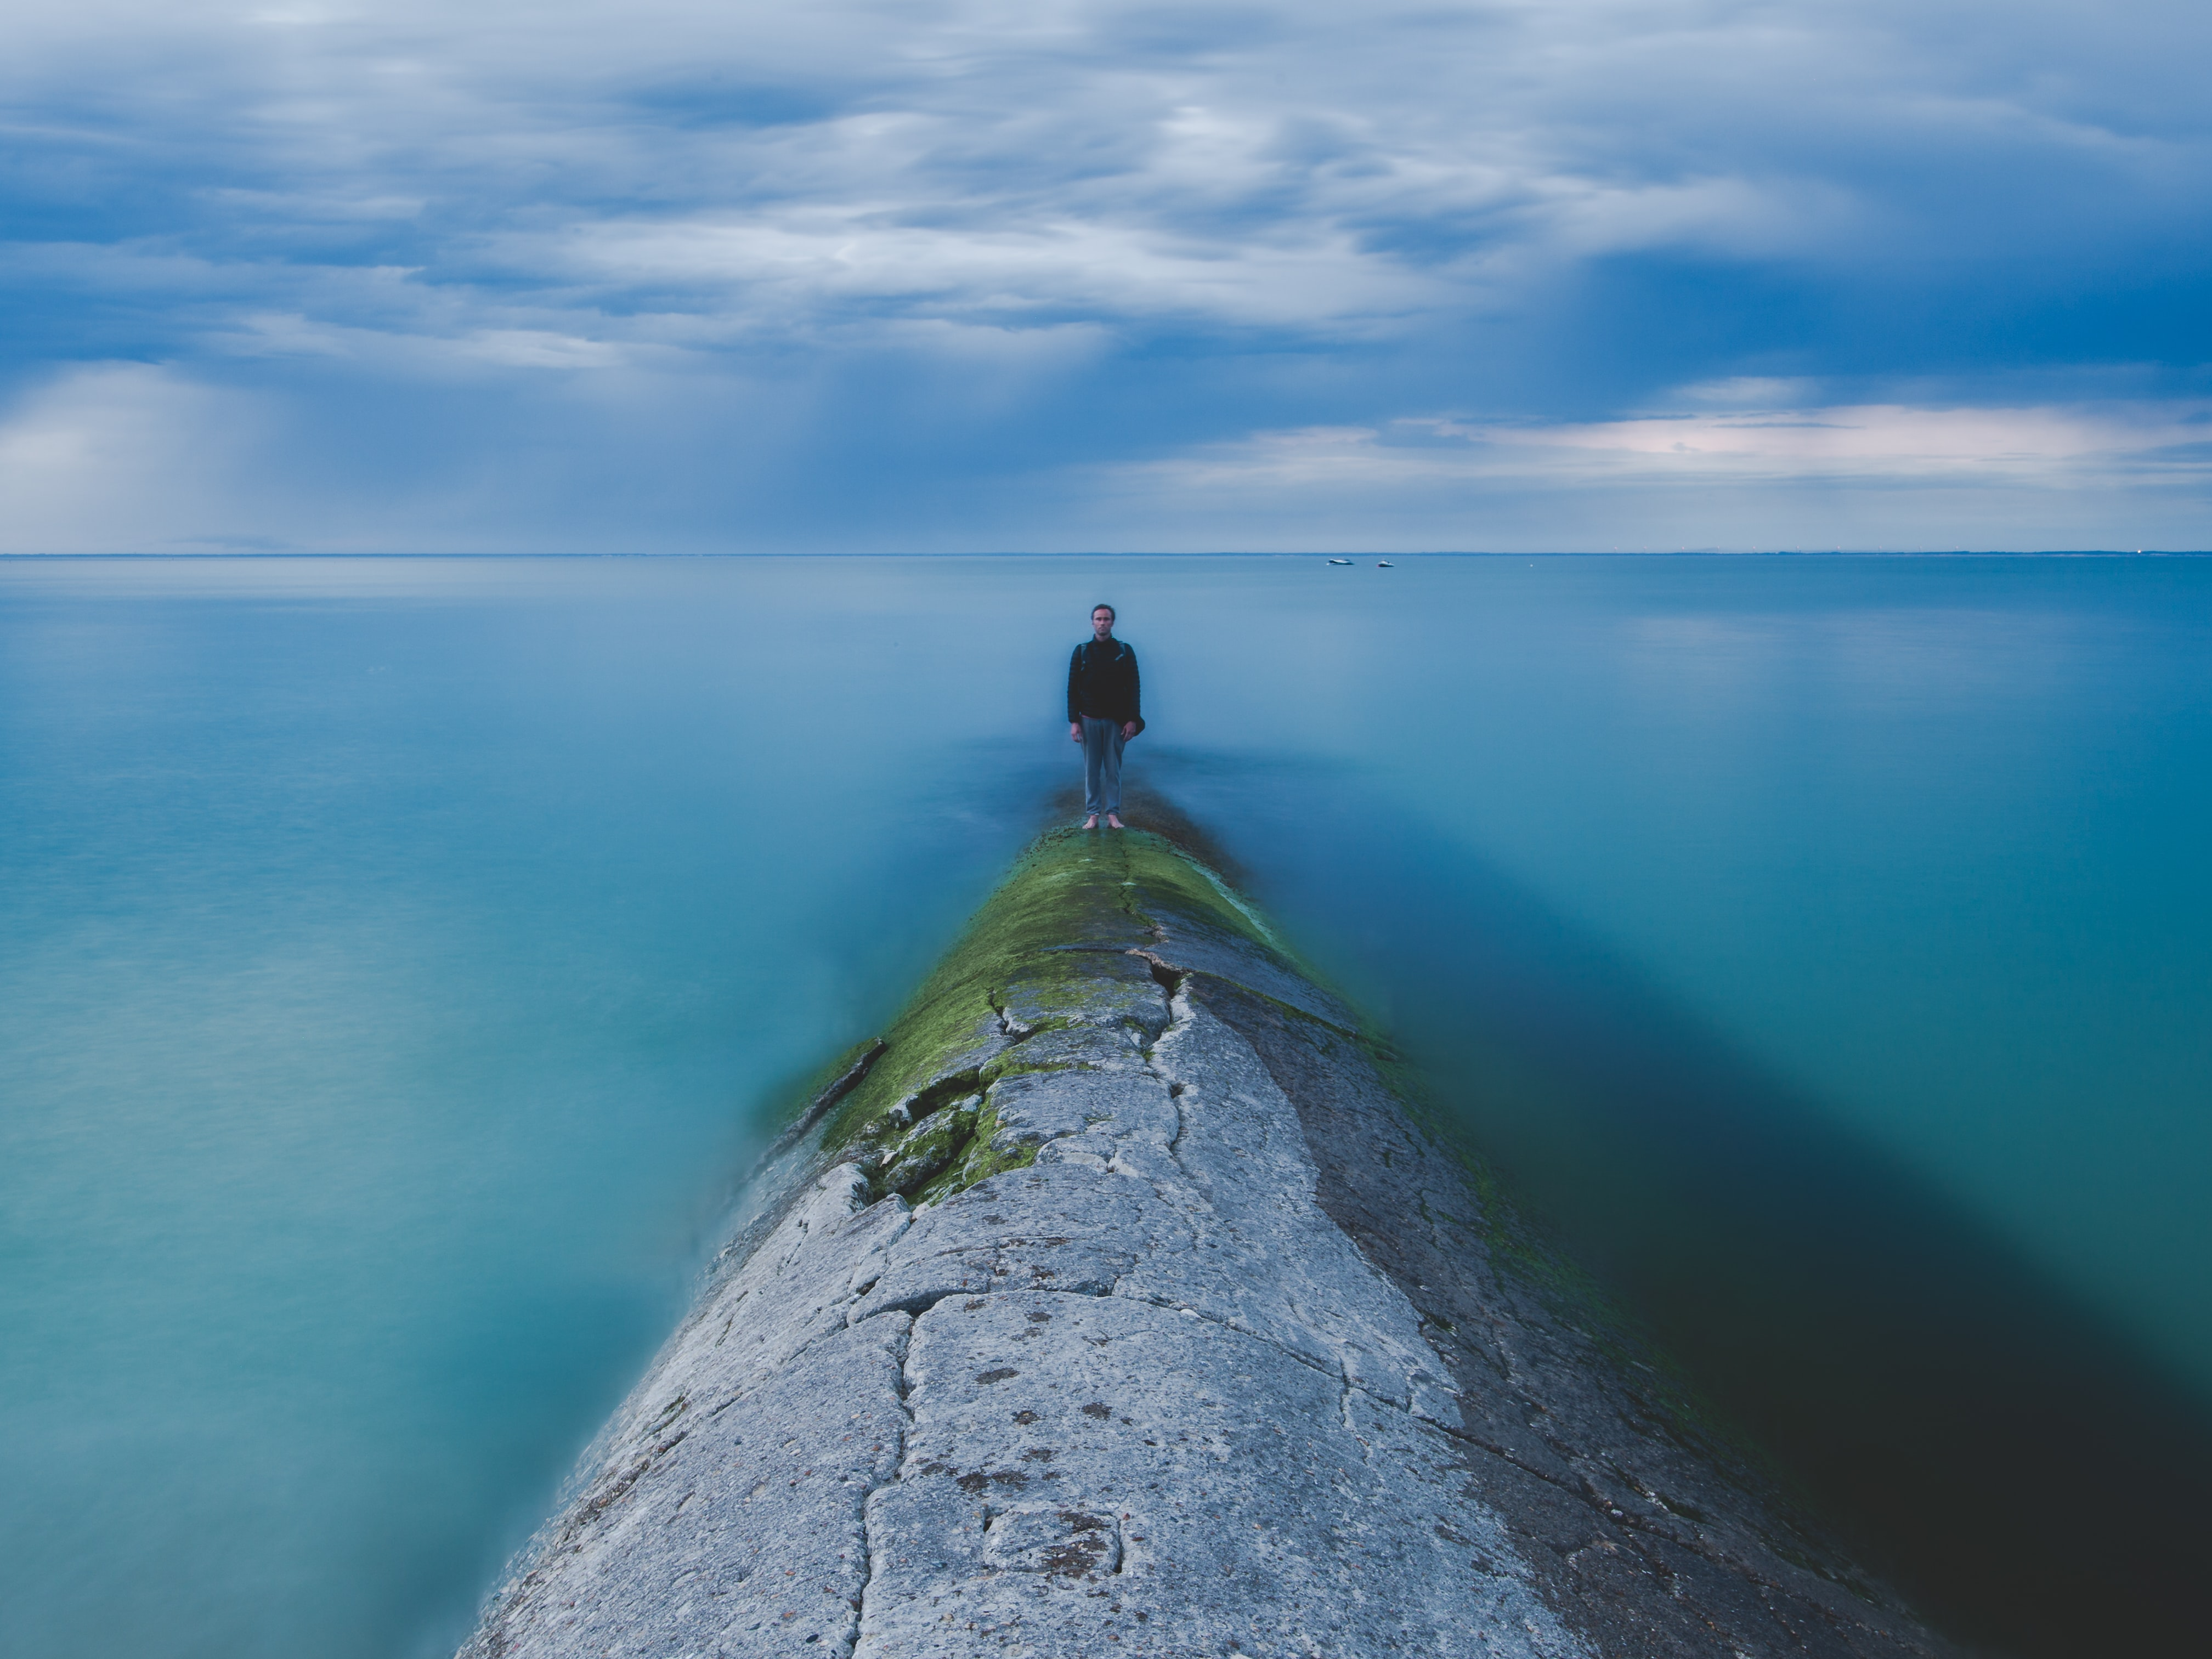 A man standing on a barrier just above the sea in Phare des Baleines